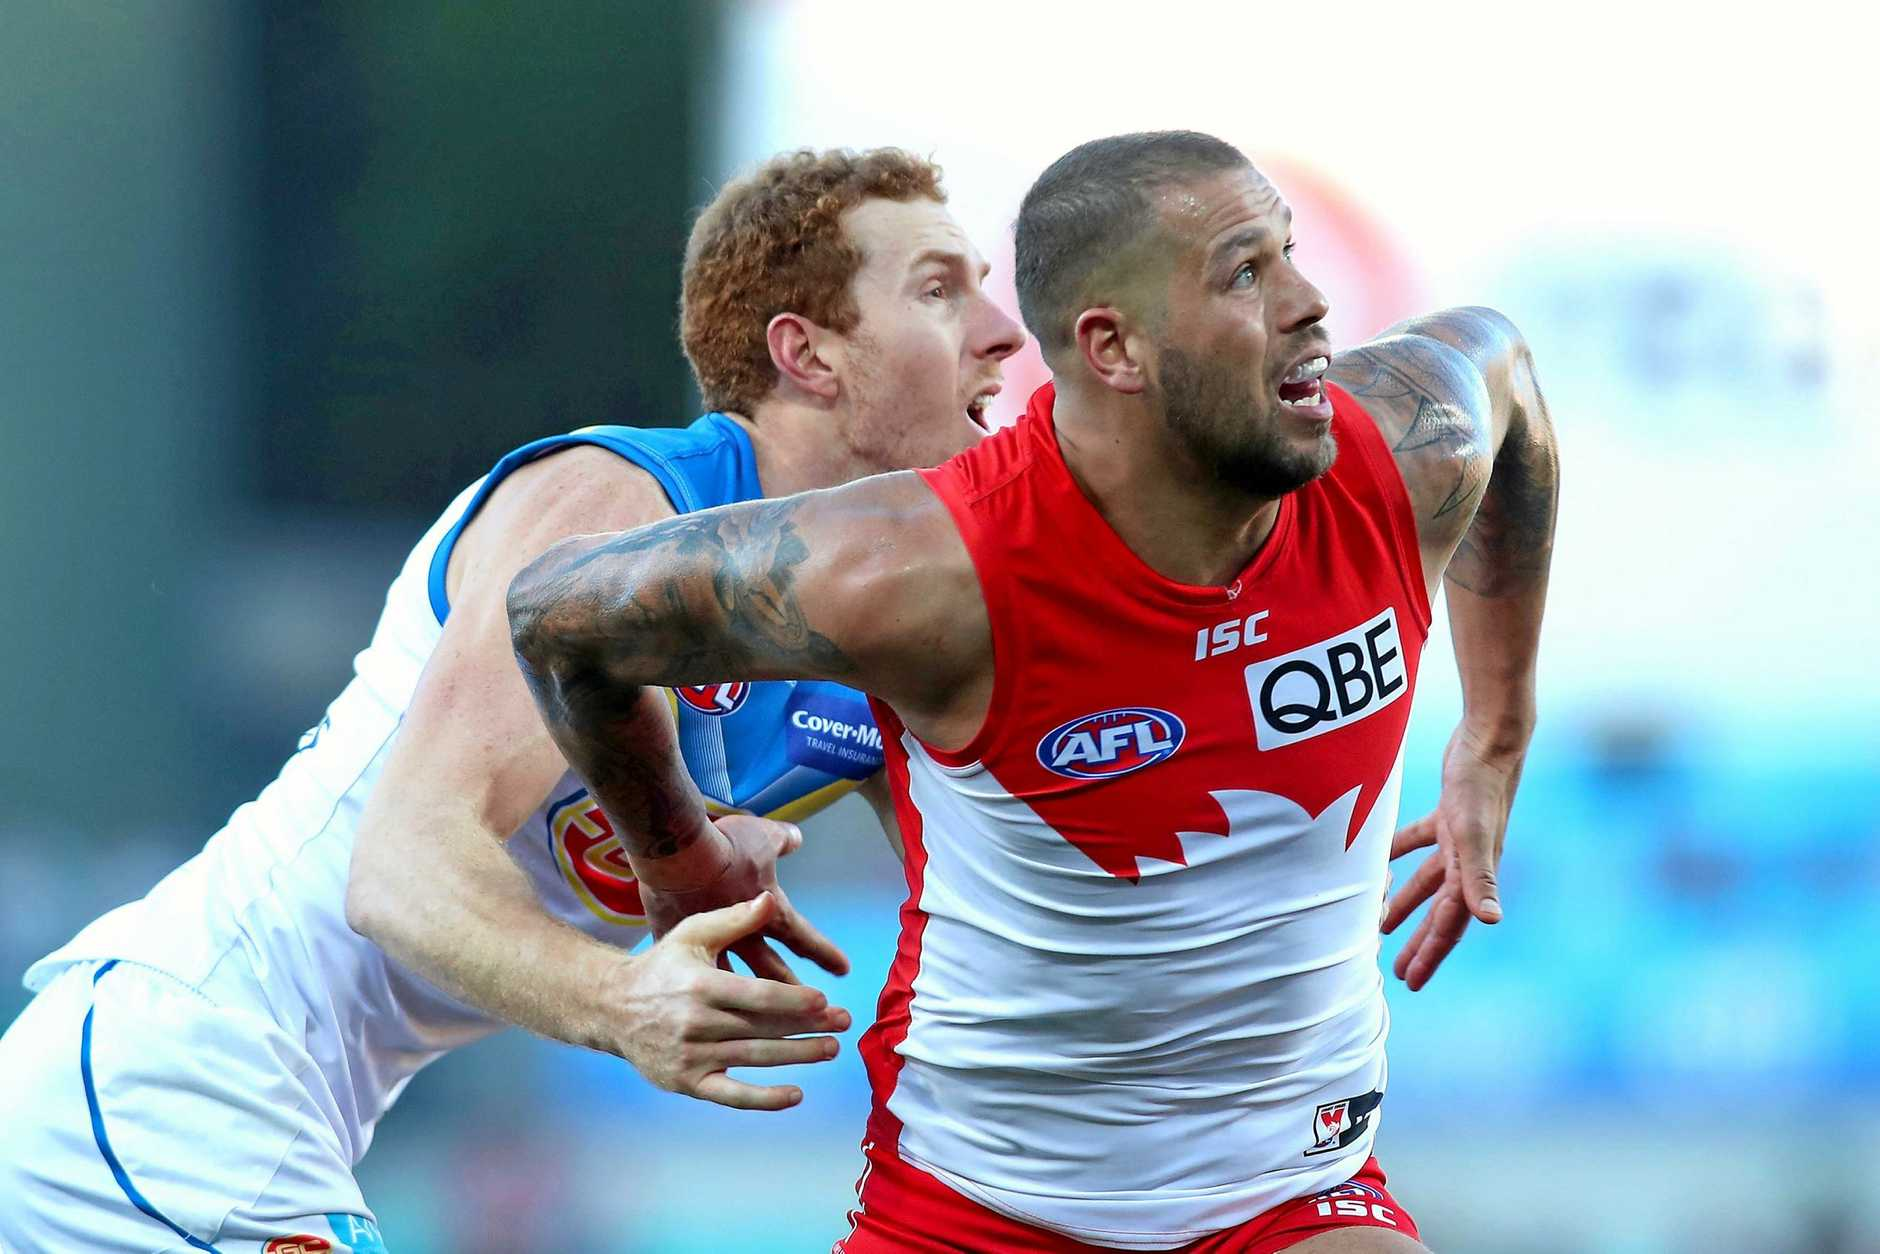 AFL AT OAKES: Will we see a repeat of this exciting match? On July 21, 2018 Lance Franklin of the Swans looks to take a mark during the round 18 AFL game between the Sydney Swans and the Gold Coast Suns at Sydney Cricket Ground.